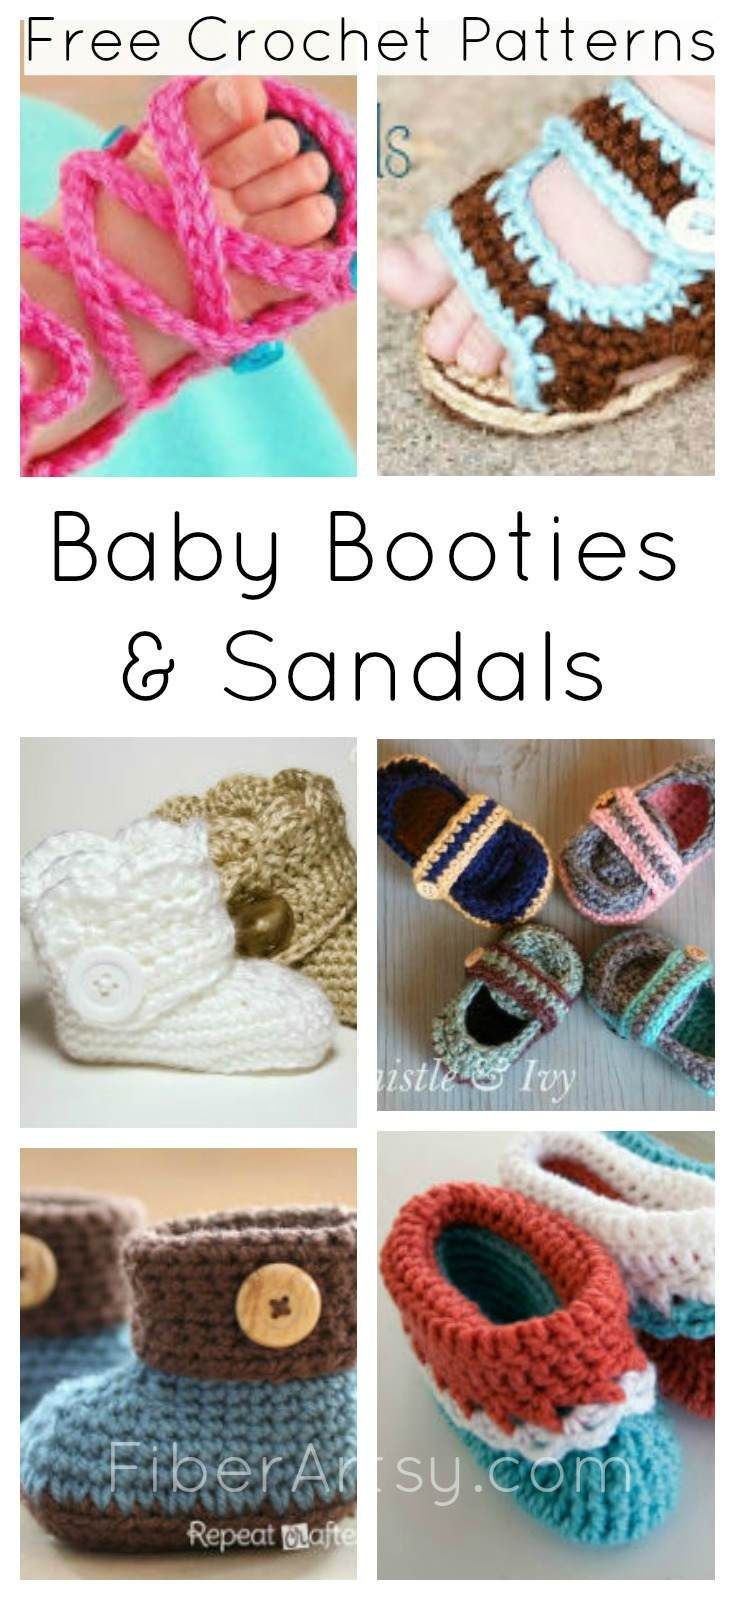 14 Free Crochet Patterns for Baby Booties | Crafts | Pinterest ...